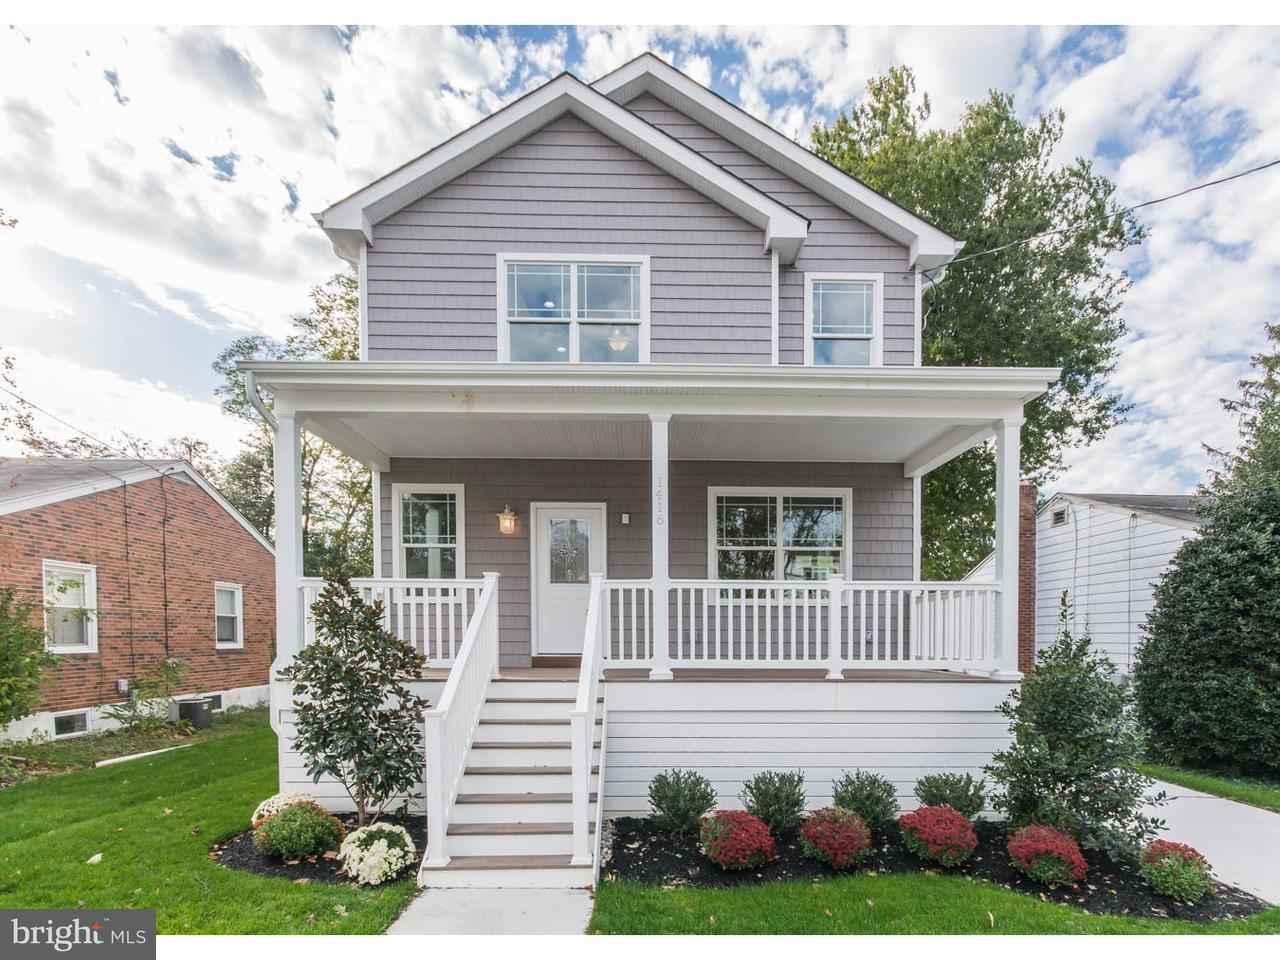 Single Family Home for Sale at 1416 SYCAMORE Street Haddon Heights, New Jersey 08035 United States